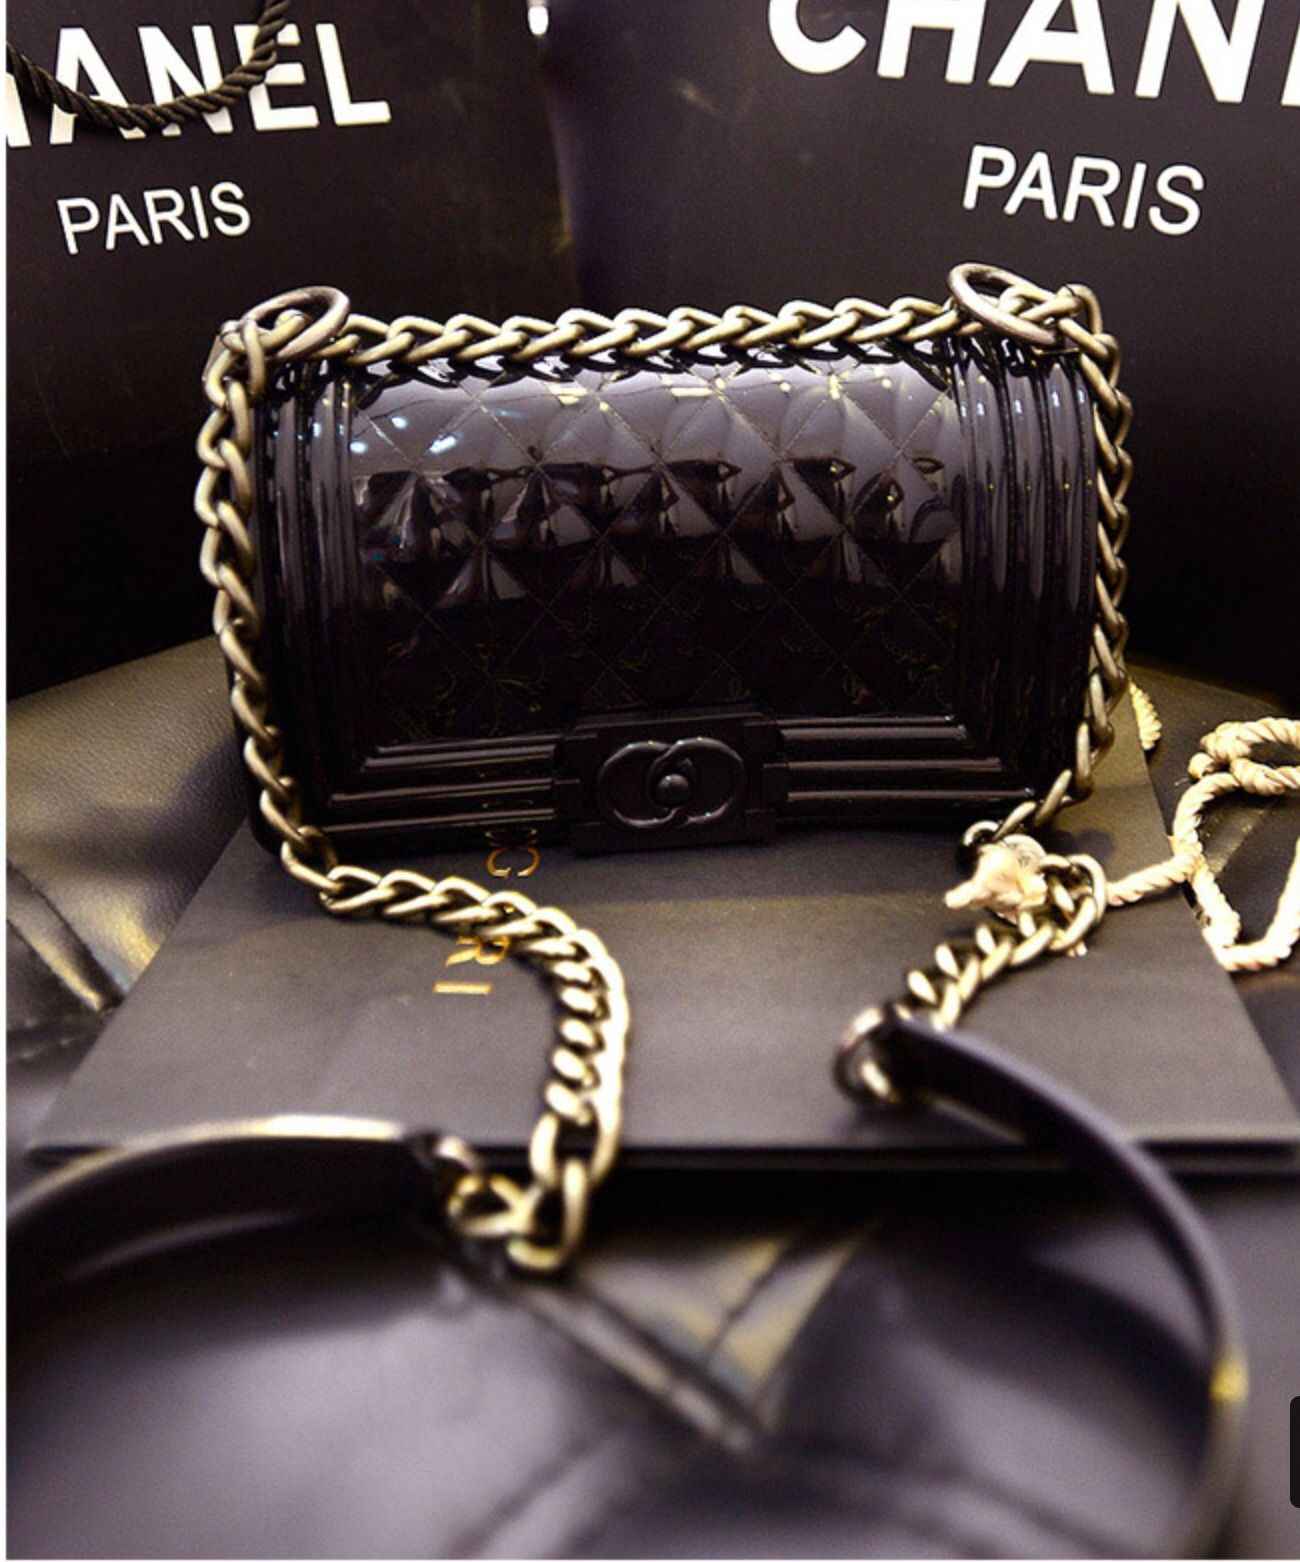 b61c86a96c69ec CHANEL Le boy Jelly Bag. If you like this bag, you can log in our web:  www.aiLoveBgas.net to purchase.